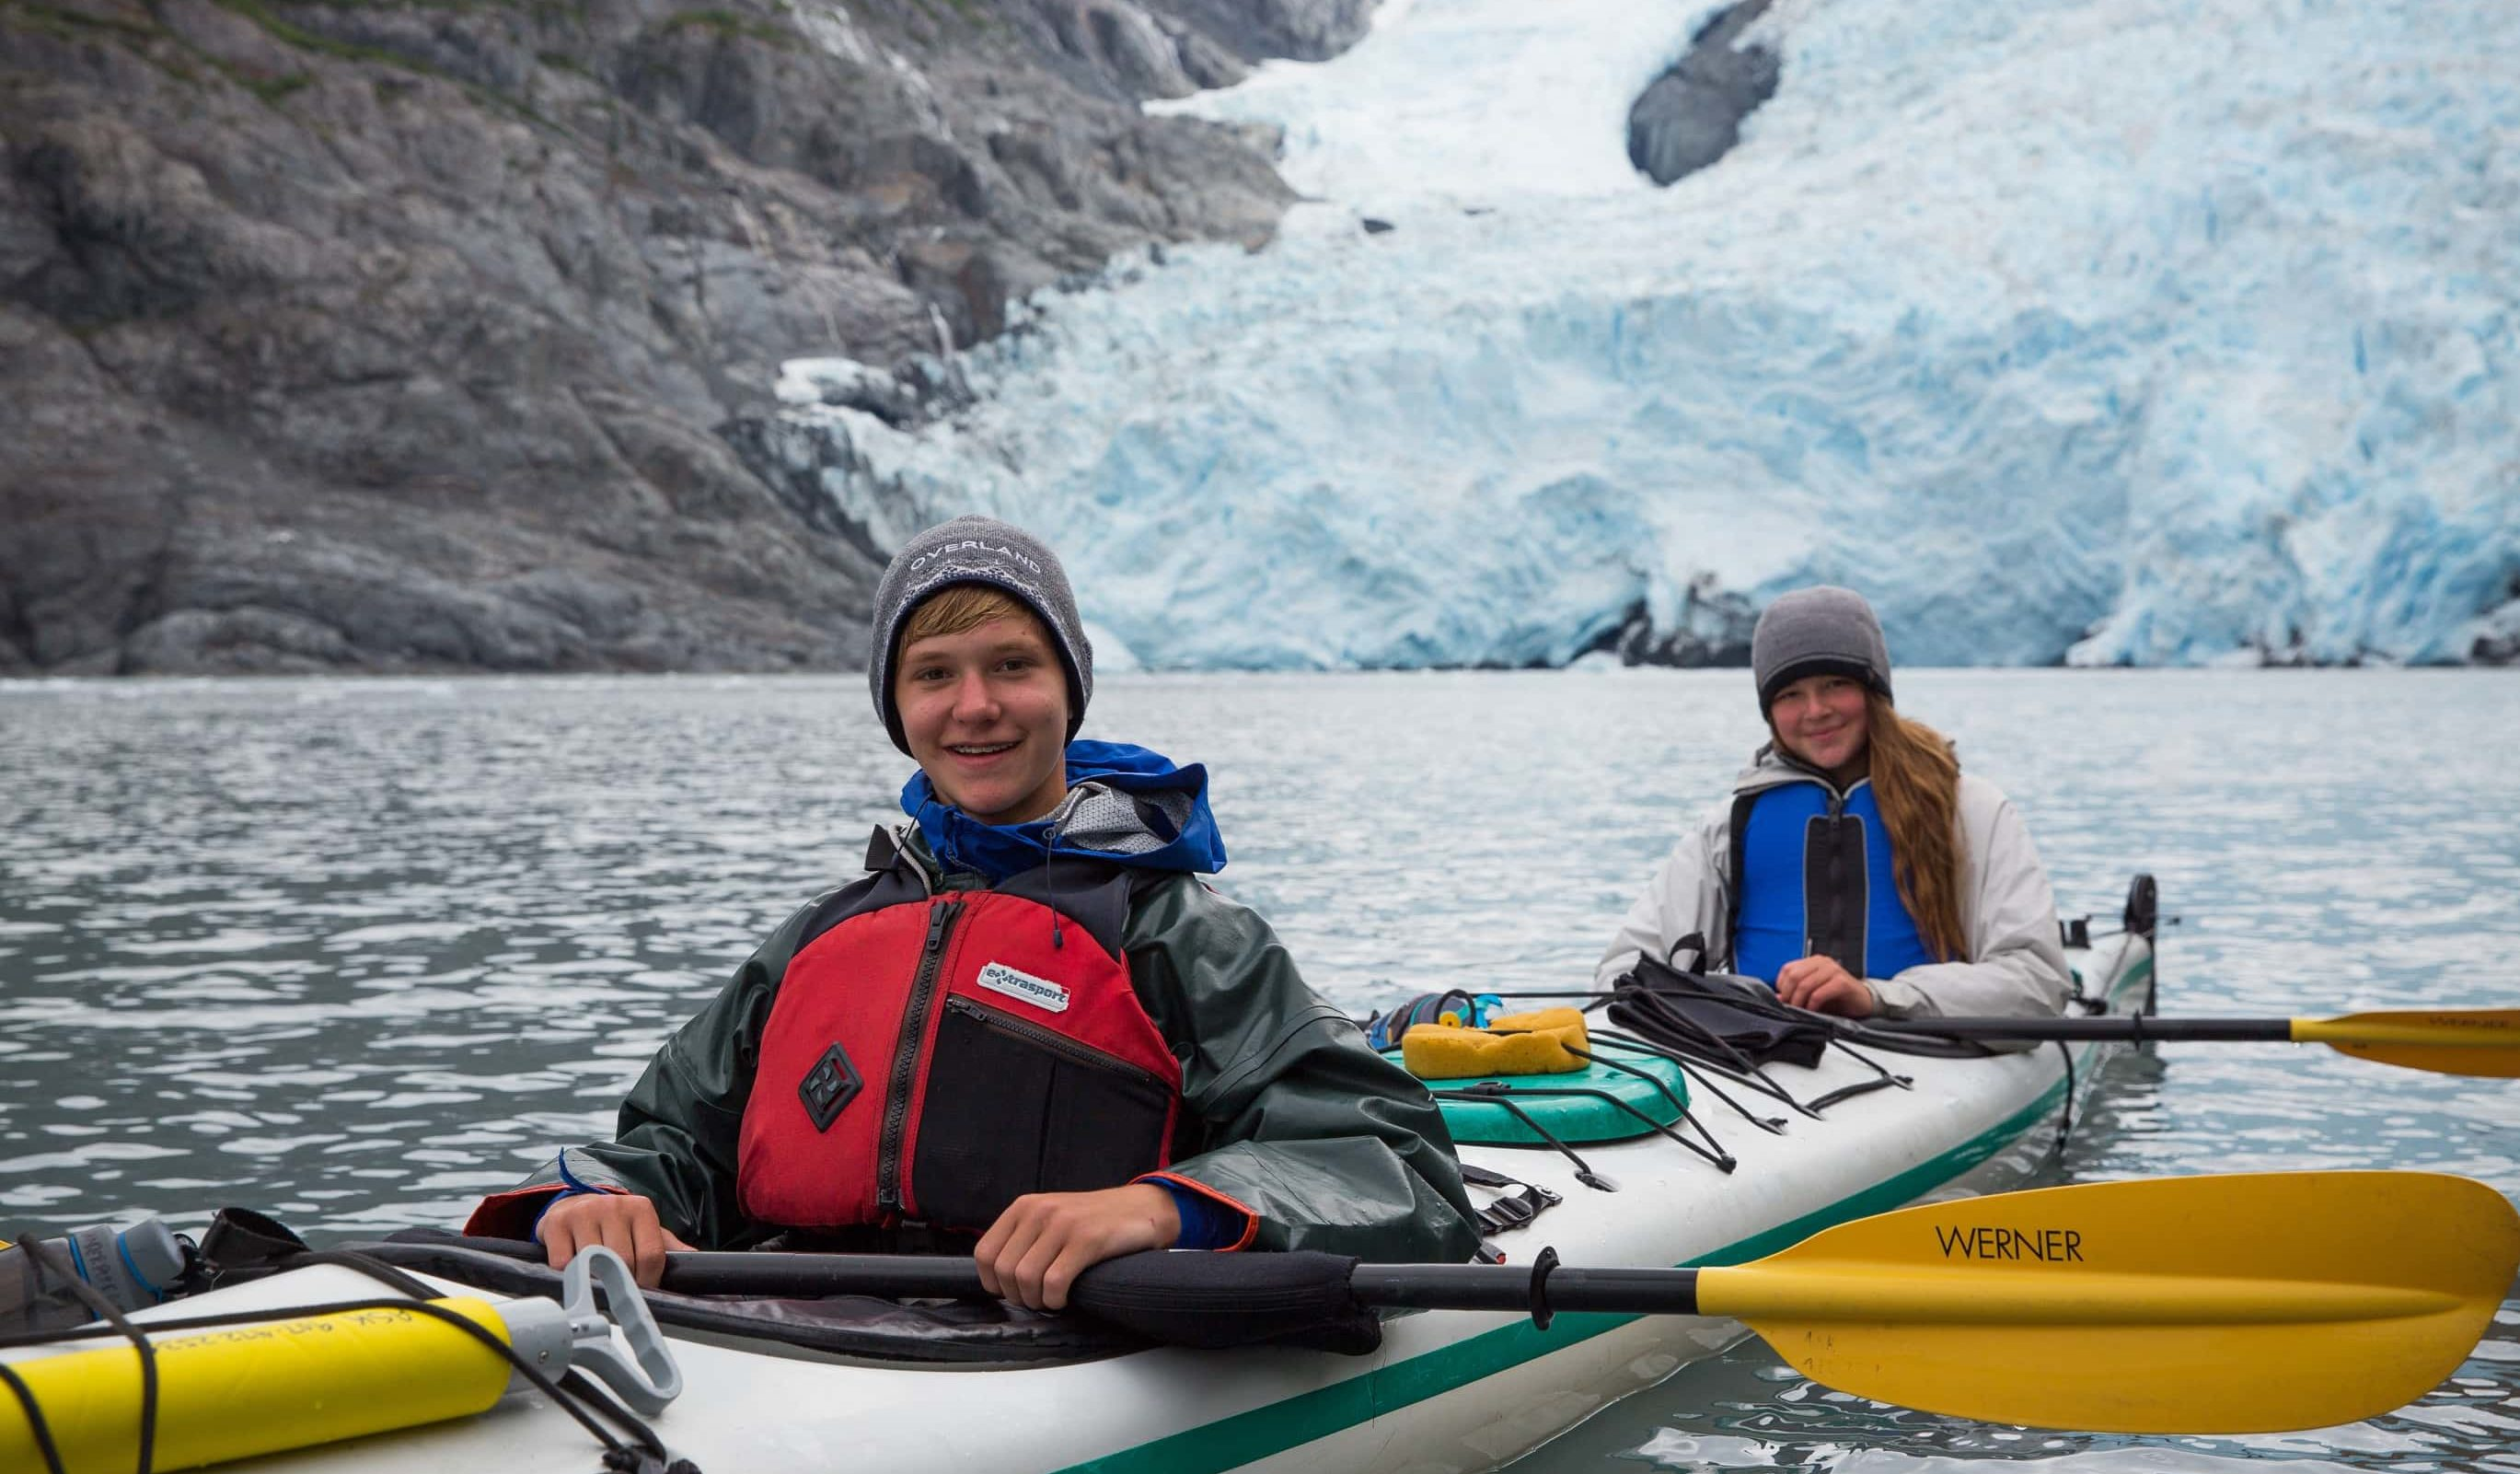 Boy smiling while sea kayaking in Alaska on a Teen Adventure Trip, with a glacier and another student in the background.